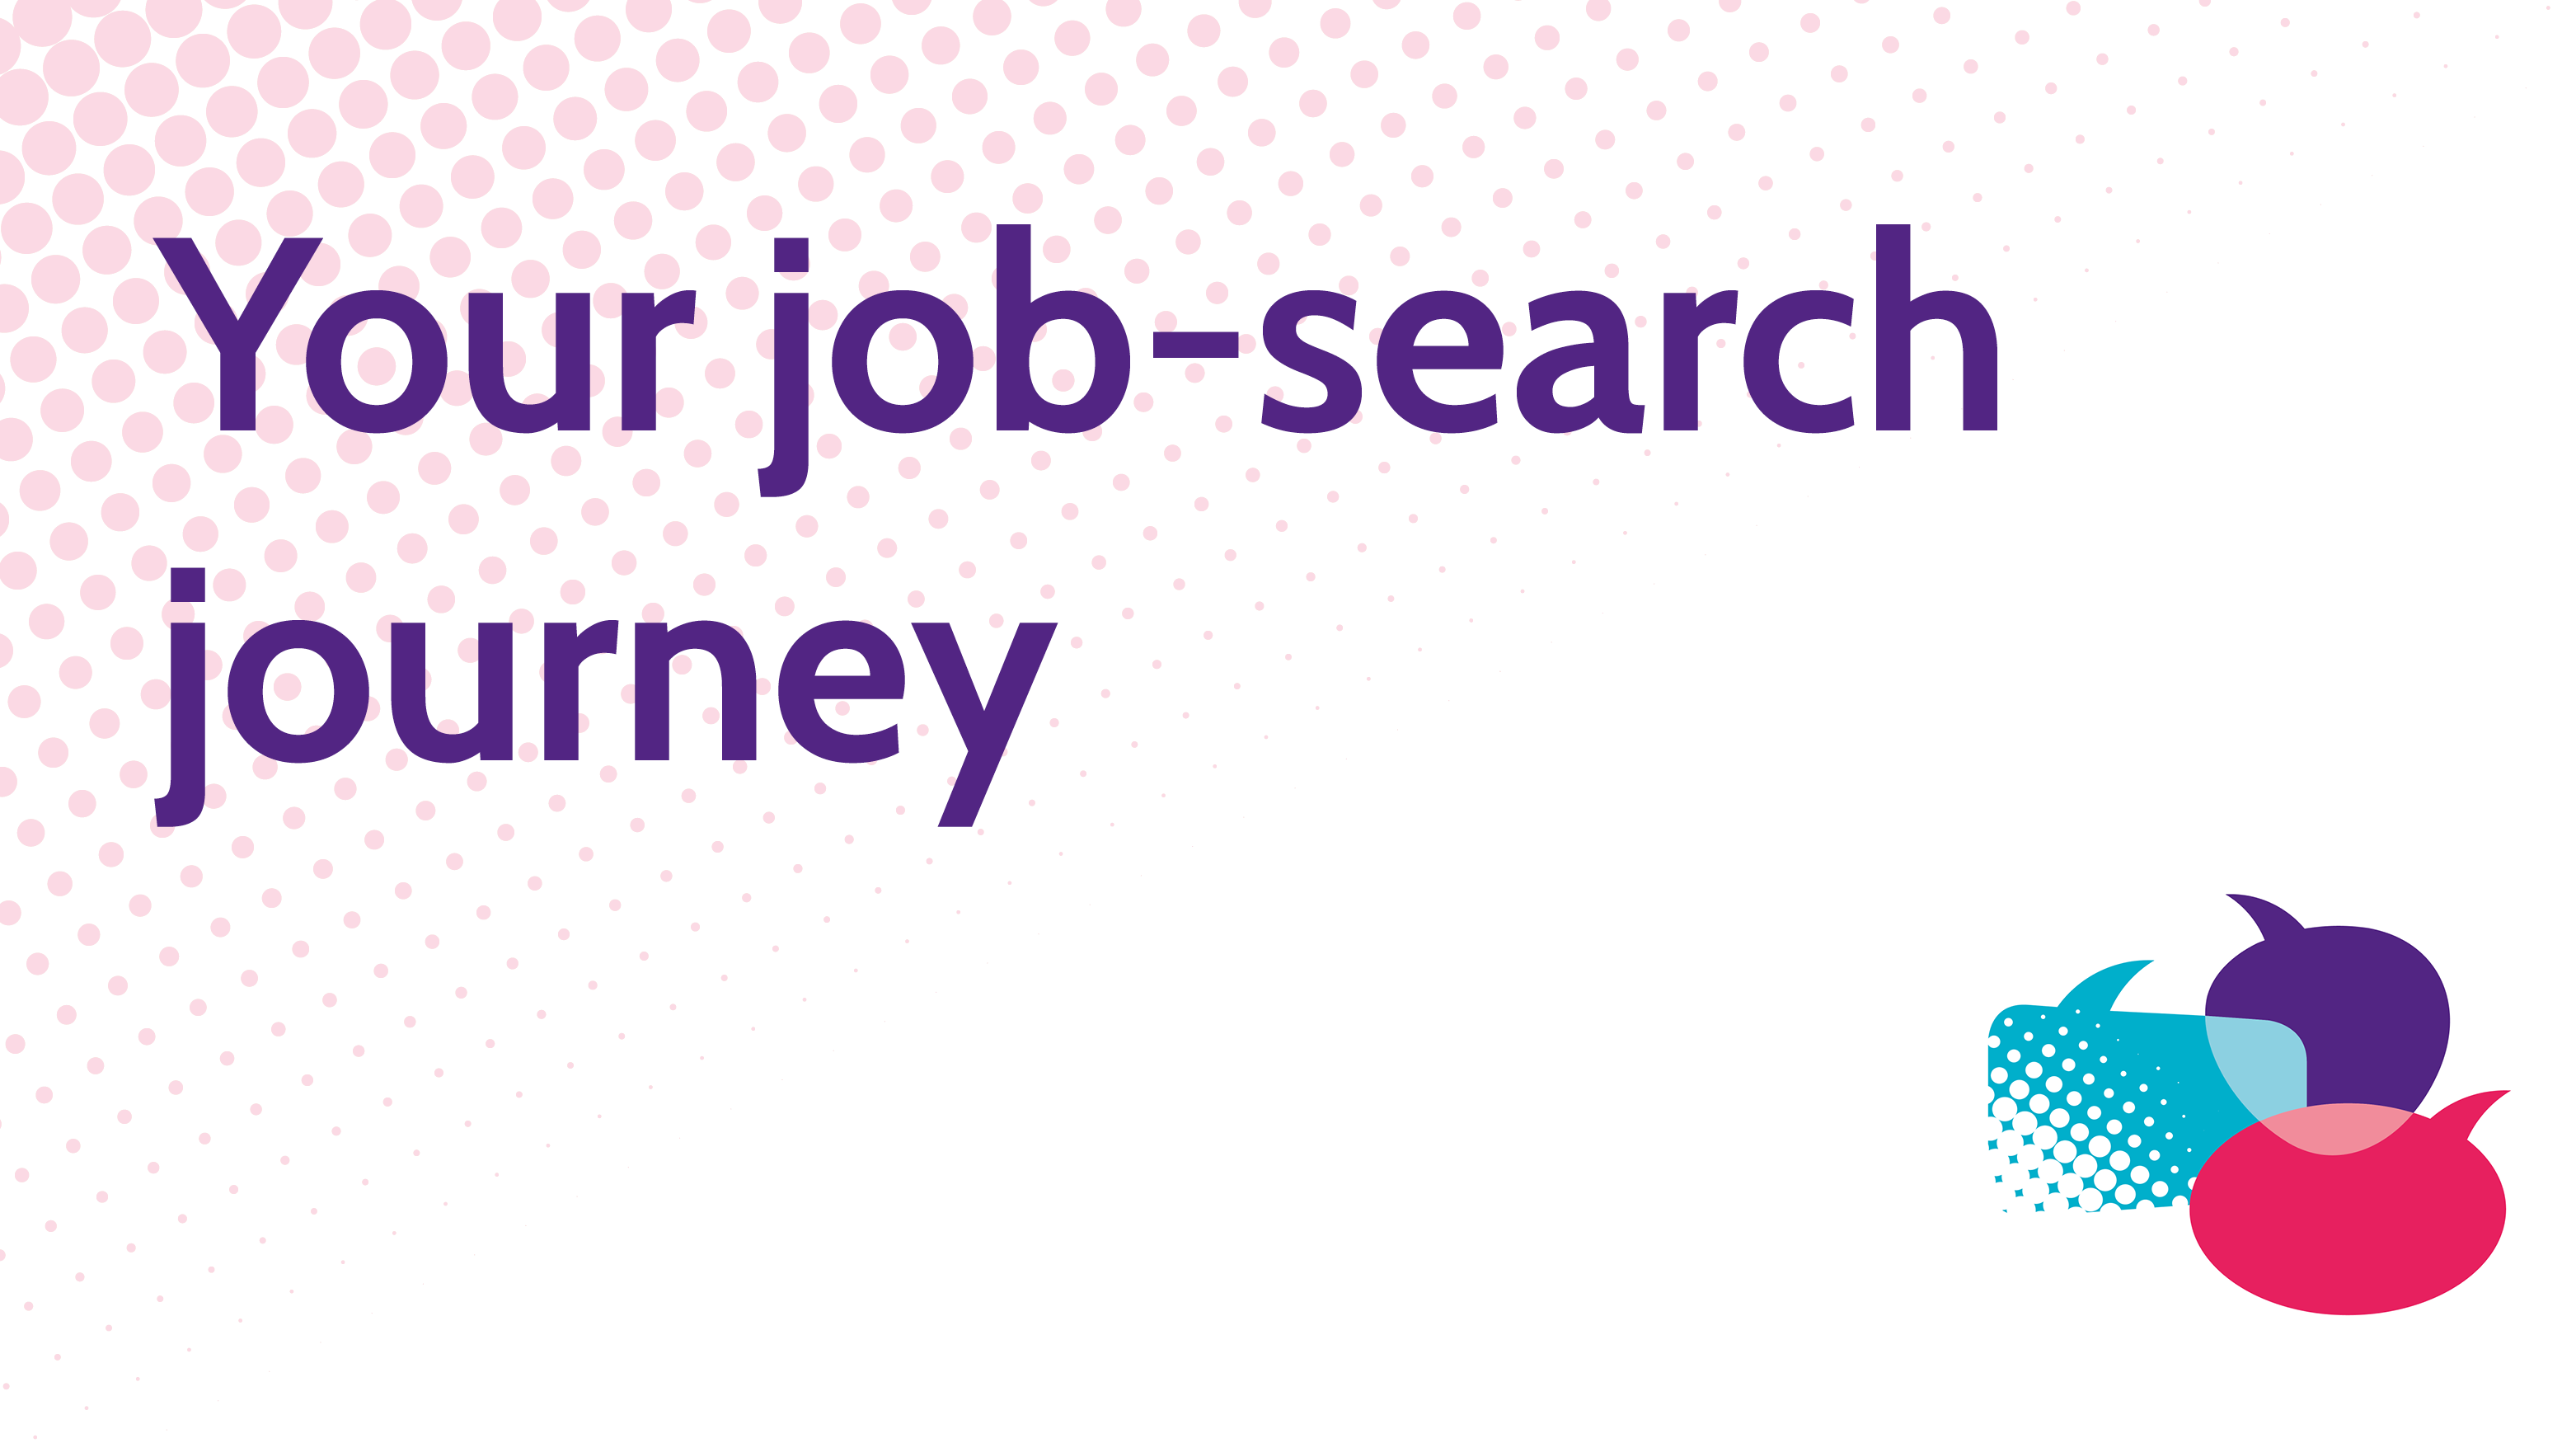 Your job search journey